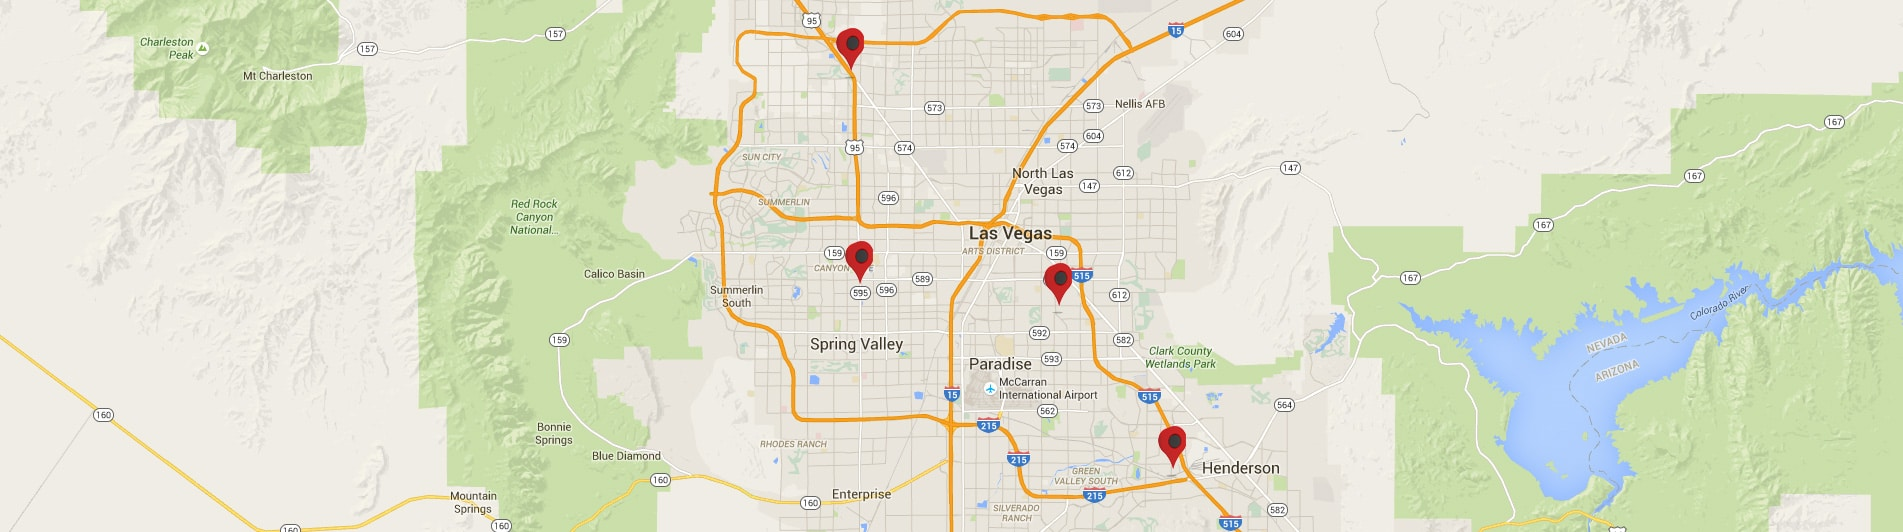 Google map of the Las Vegas area with markers for all of the USA Money Today title loan locations